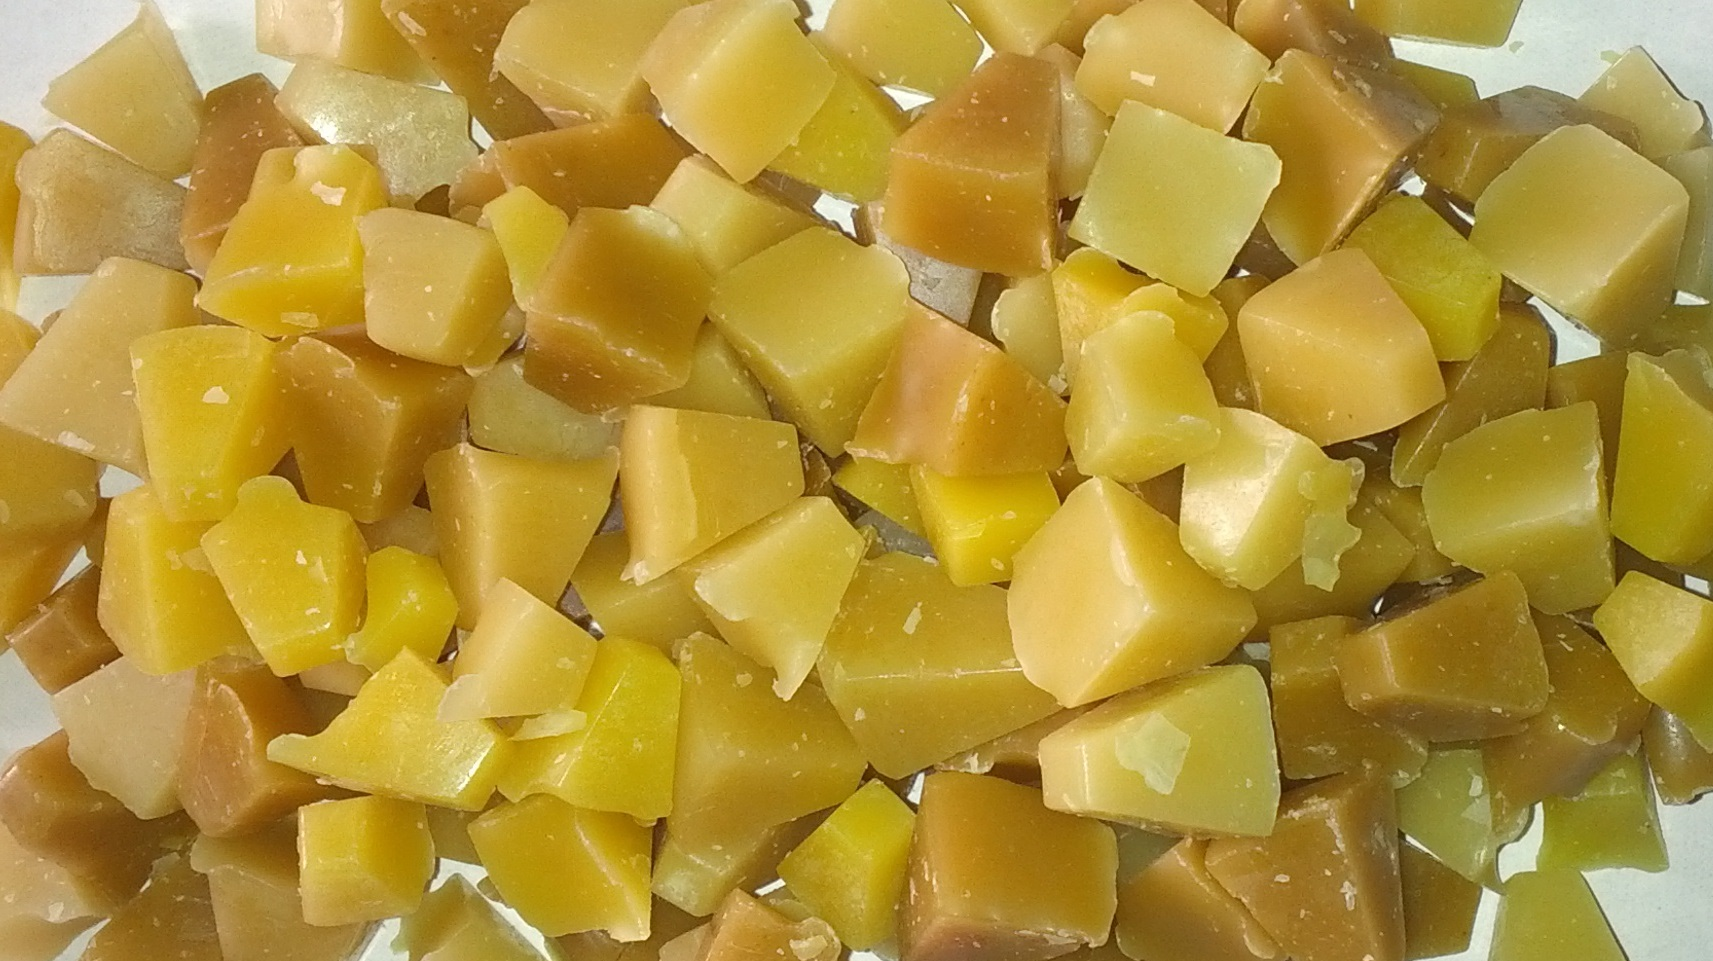 beeswax chunks cr